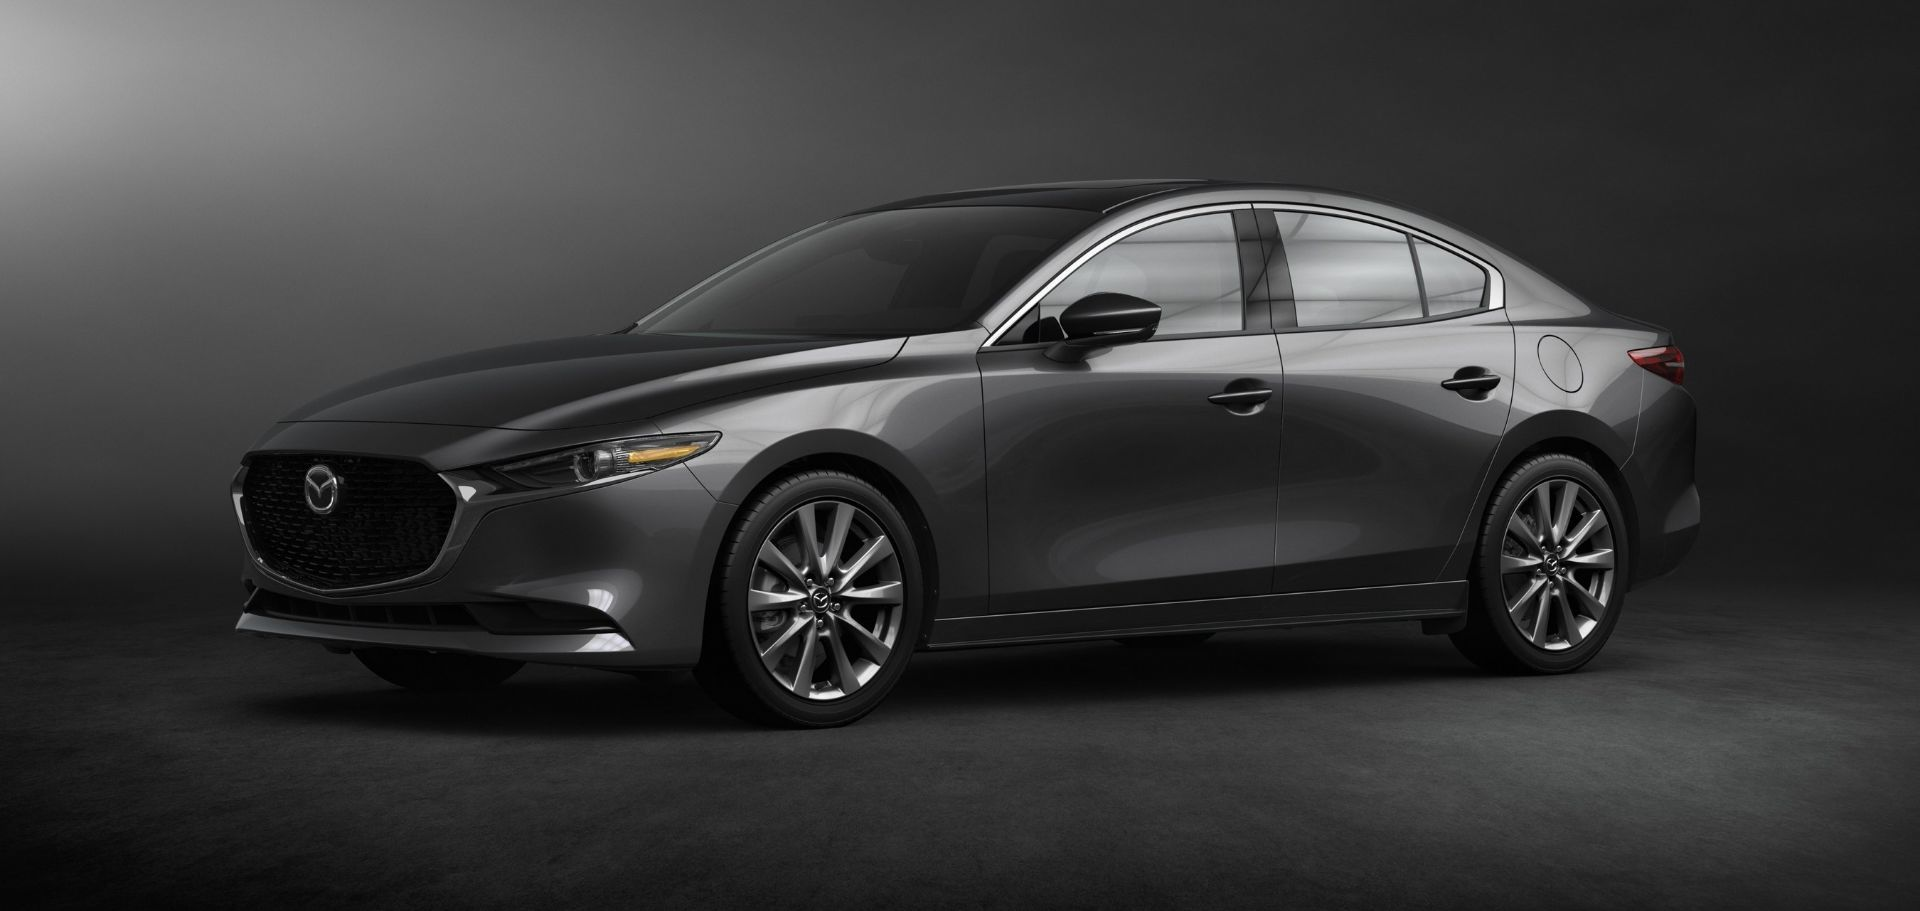 The New 2019 Mazda3 in Detail